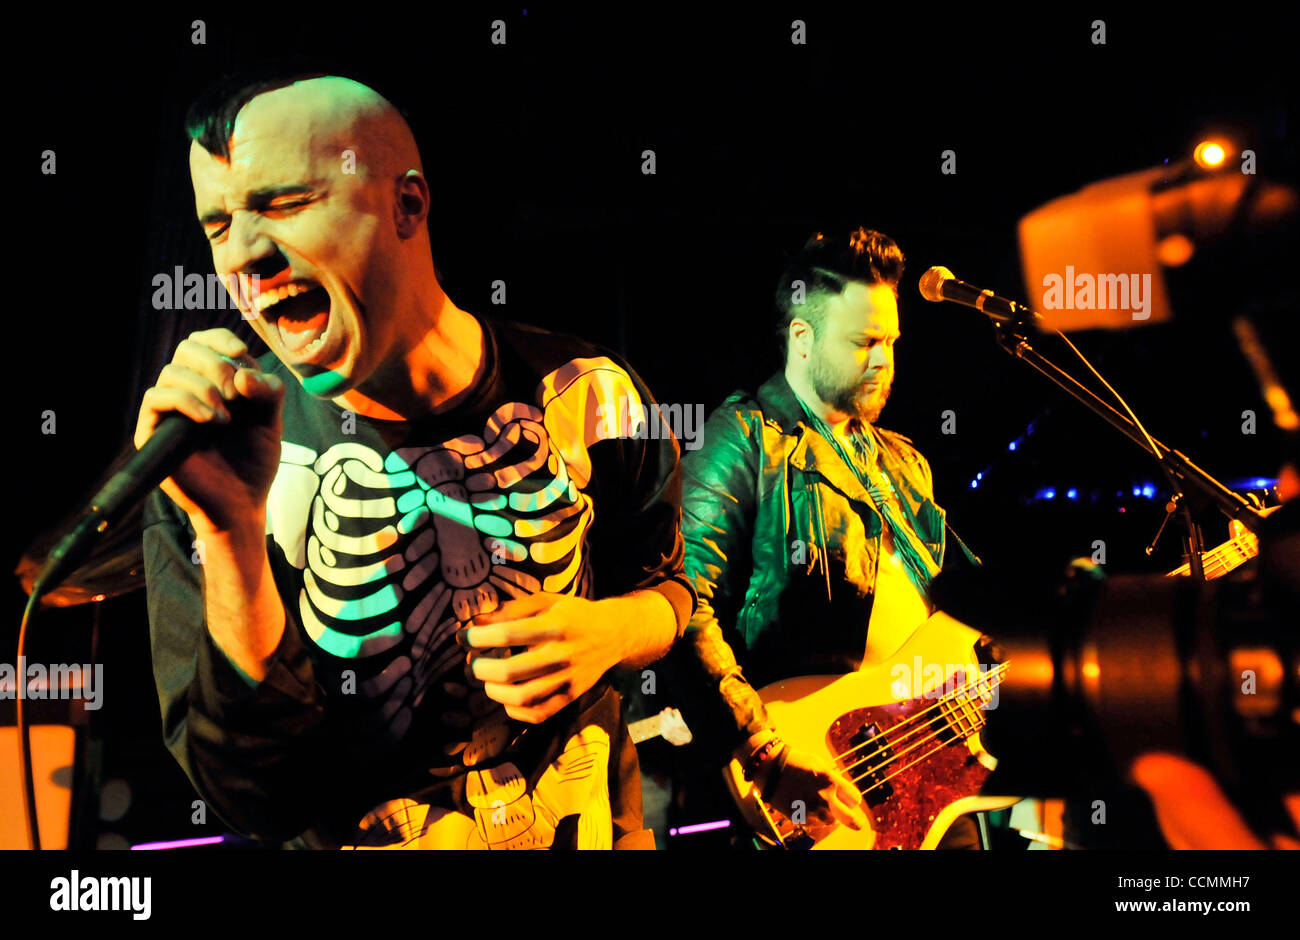 Neon trees drummer and lead singer dating tennis 5